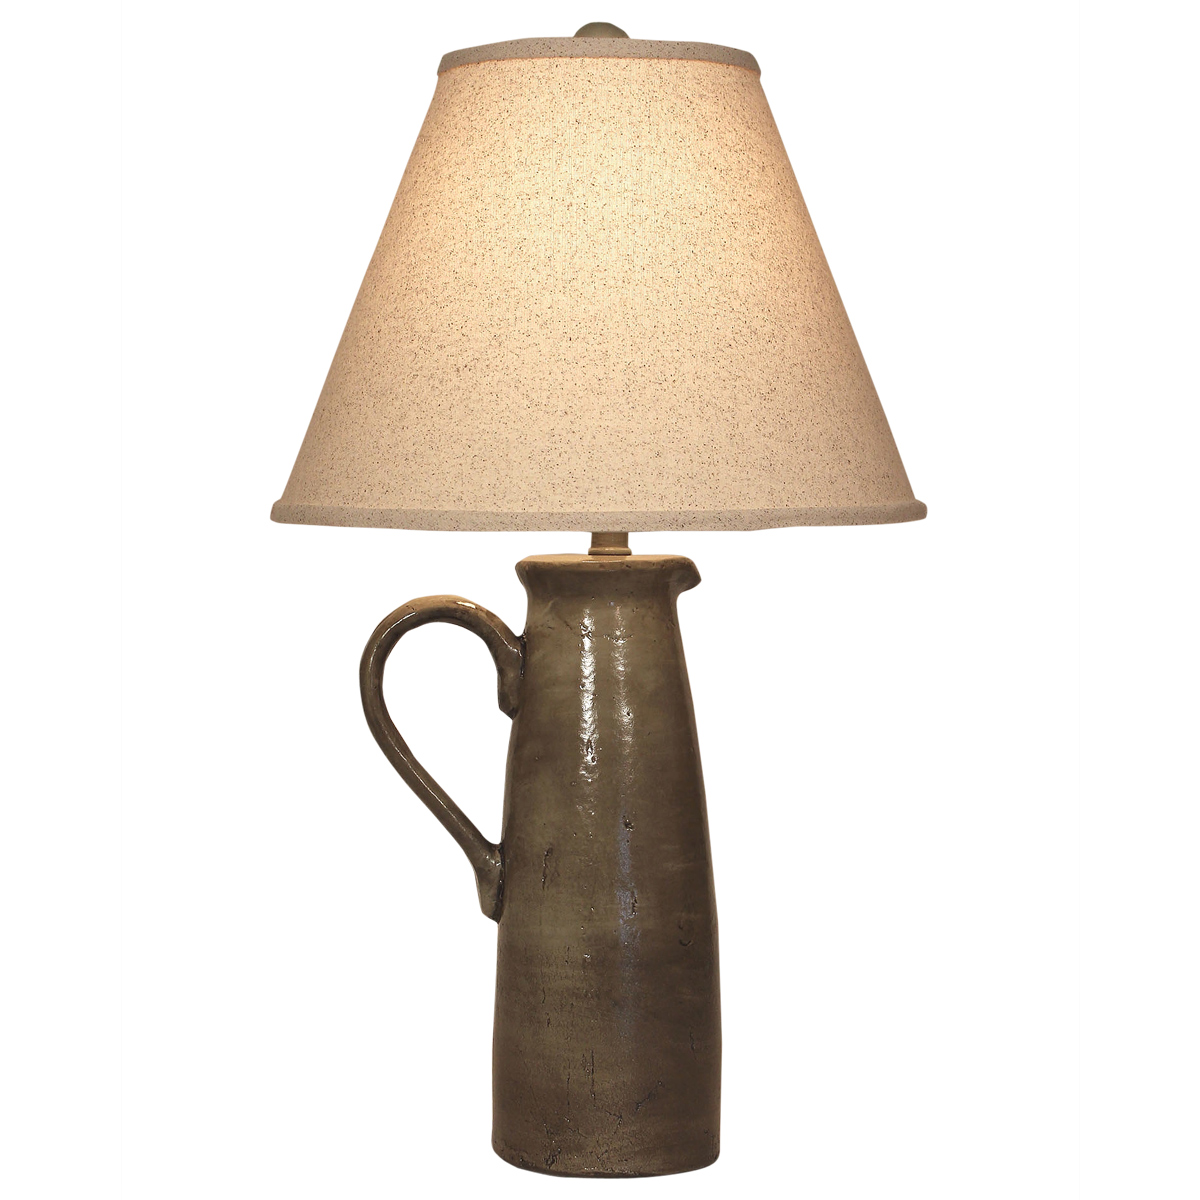 Gray Handled Pitcher Table Lamp